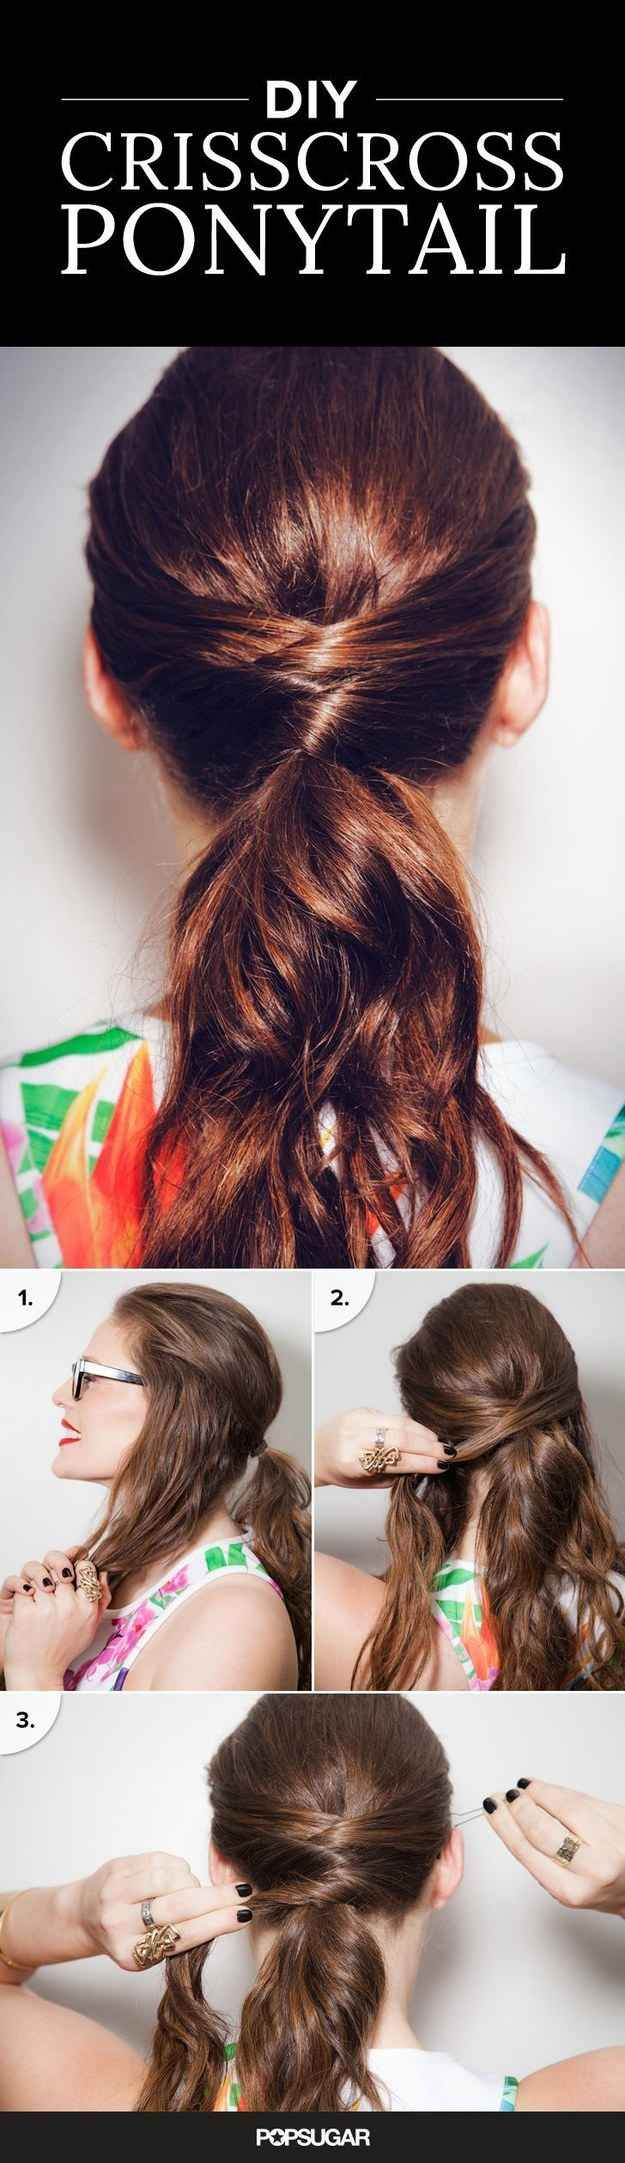 21 second day hairstyles to try